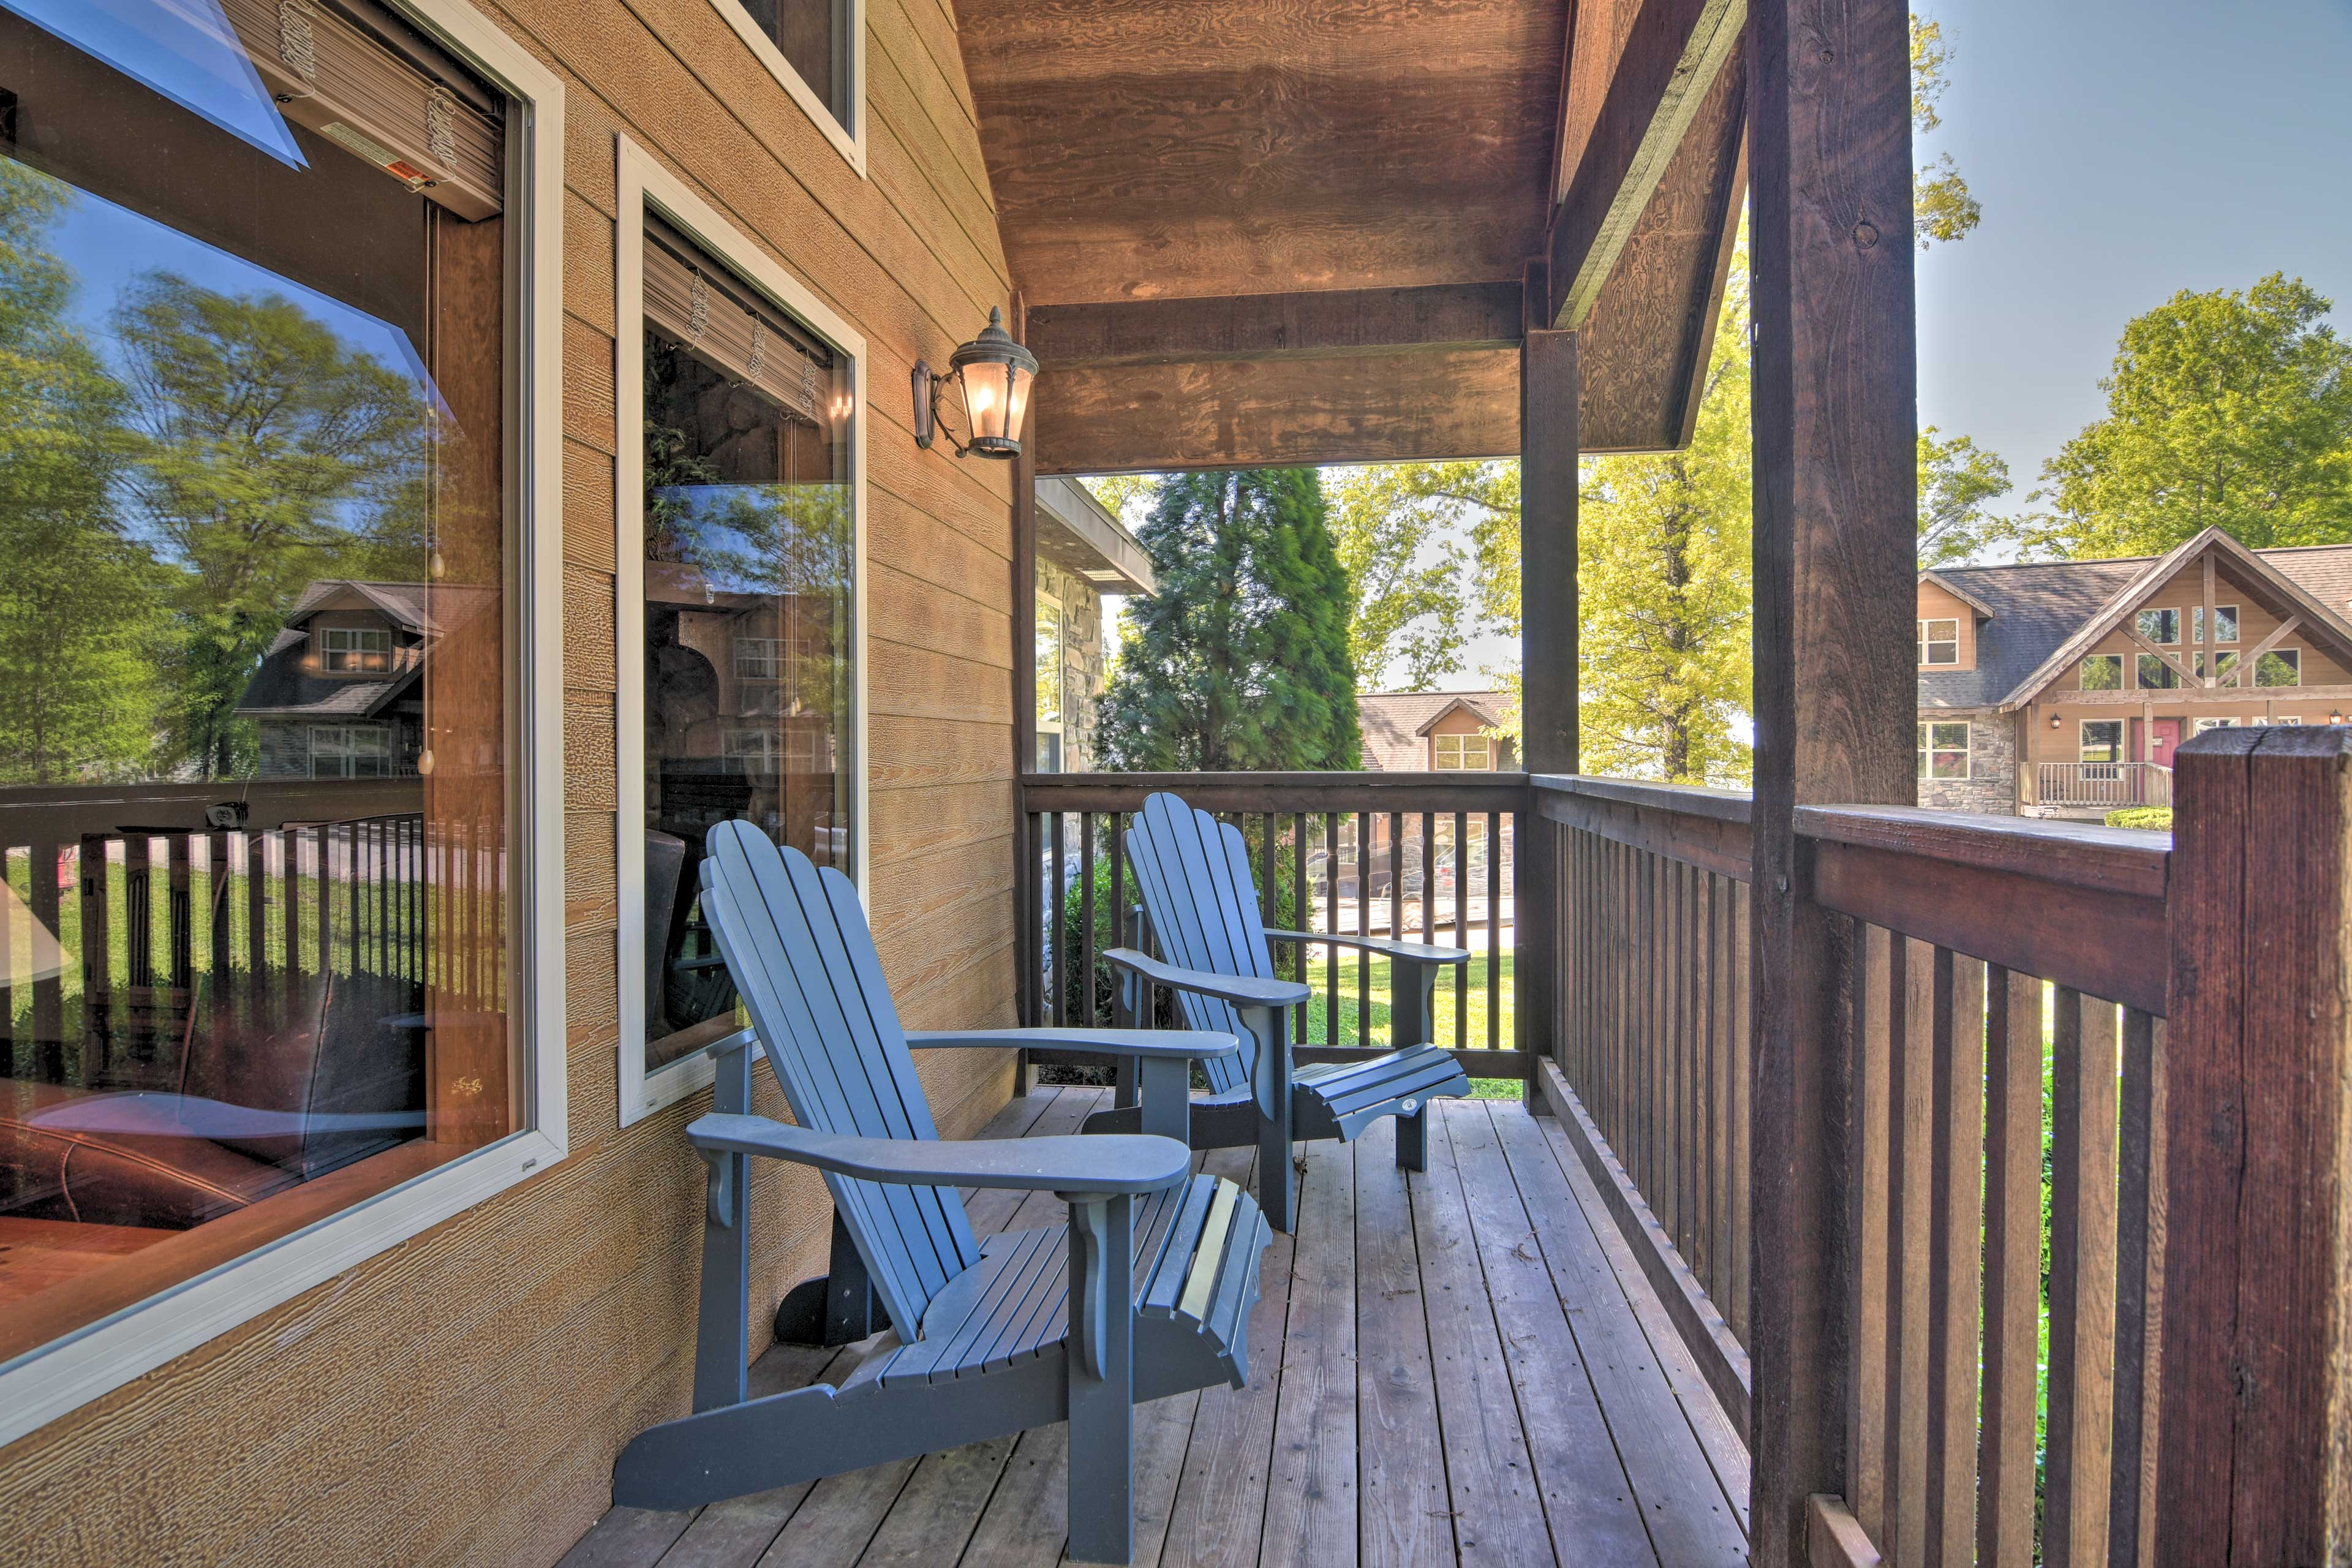 Exterior   Covered Front Porch   Adirondack Chairs